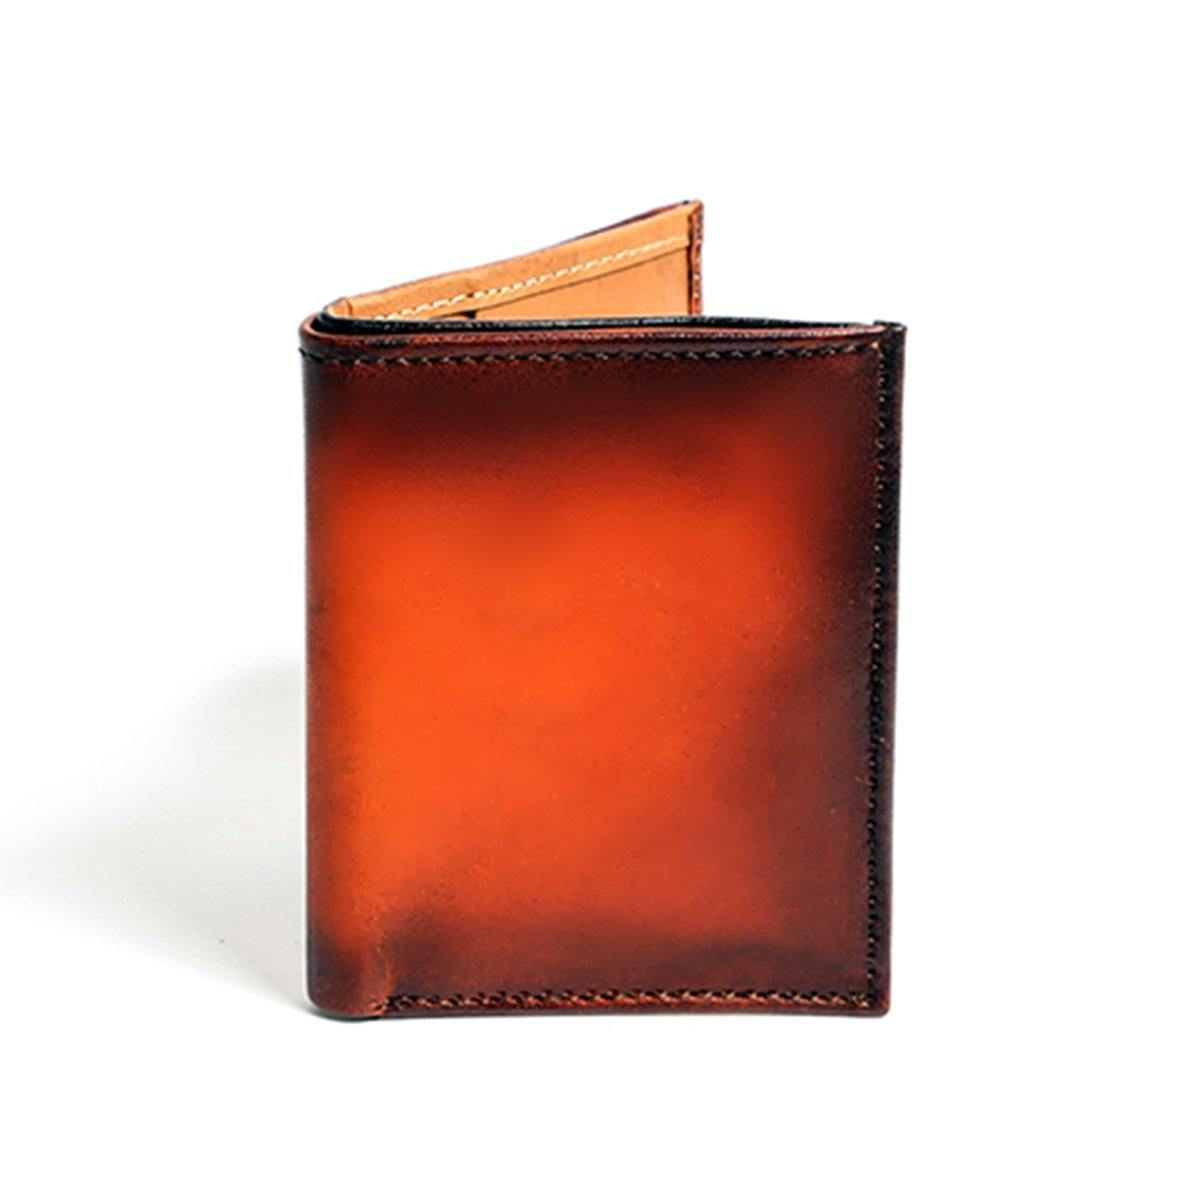 Wallet - TLC-7006 - TLC - The Leather Crafts